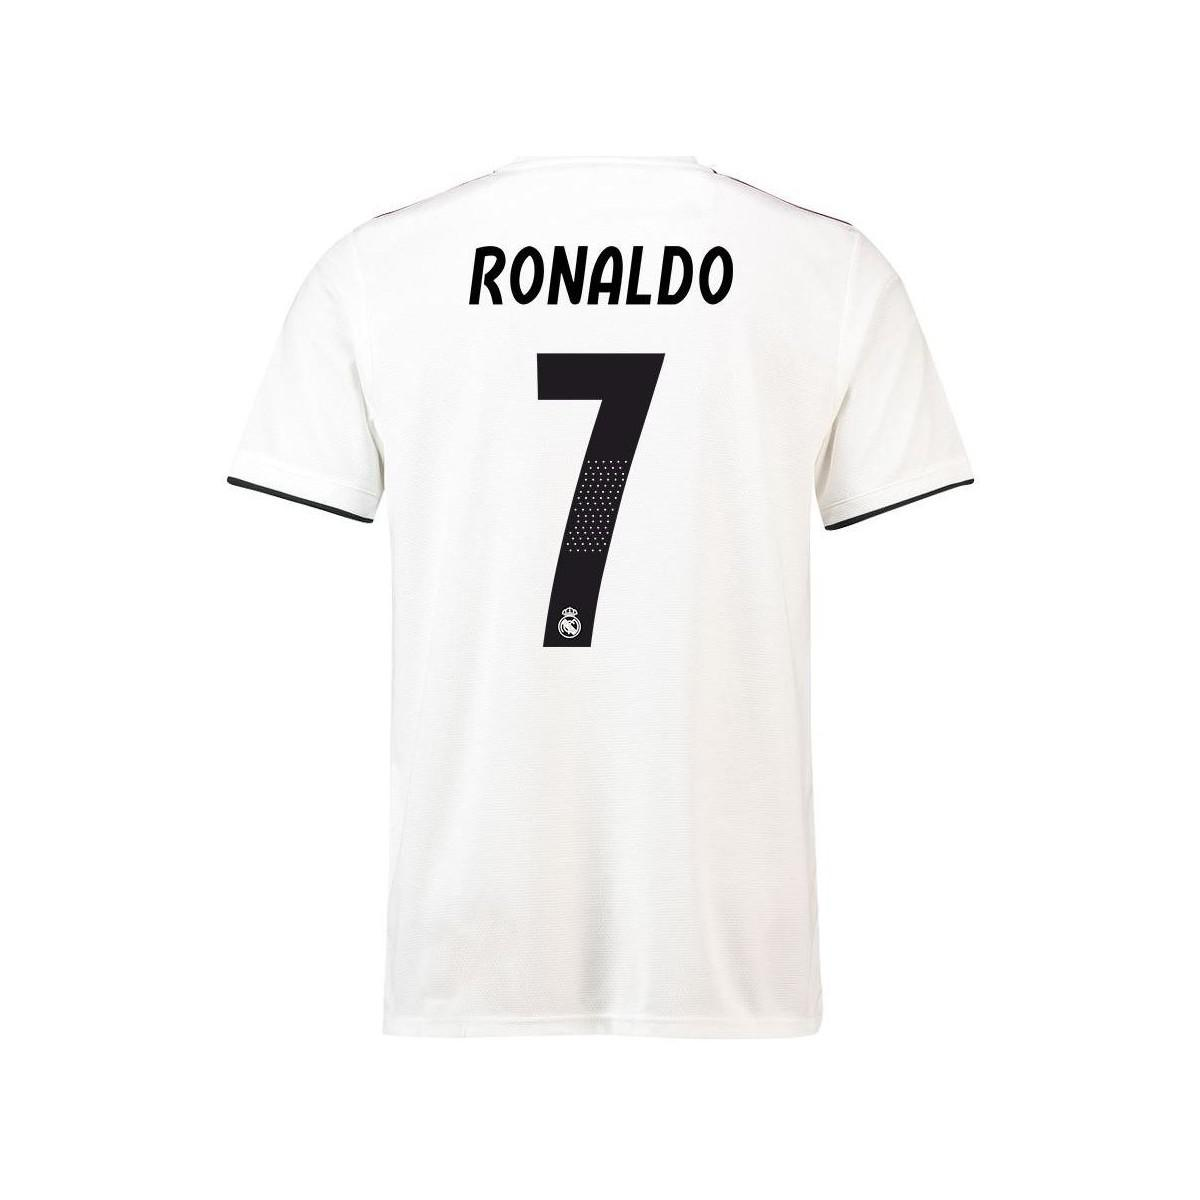 571f42d6 adidas 2018-19 Real Madrid Home Football Shirt (ronaldo 7) Men's T ...